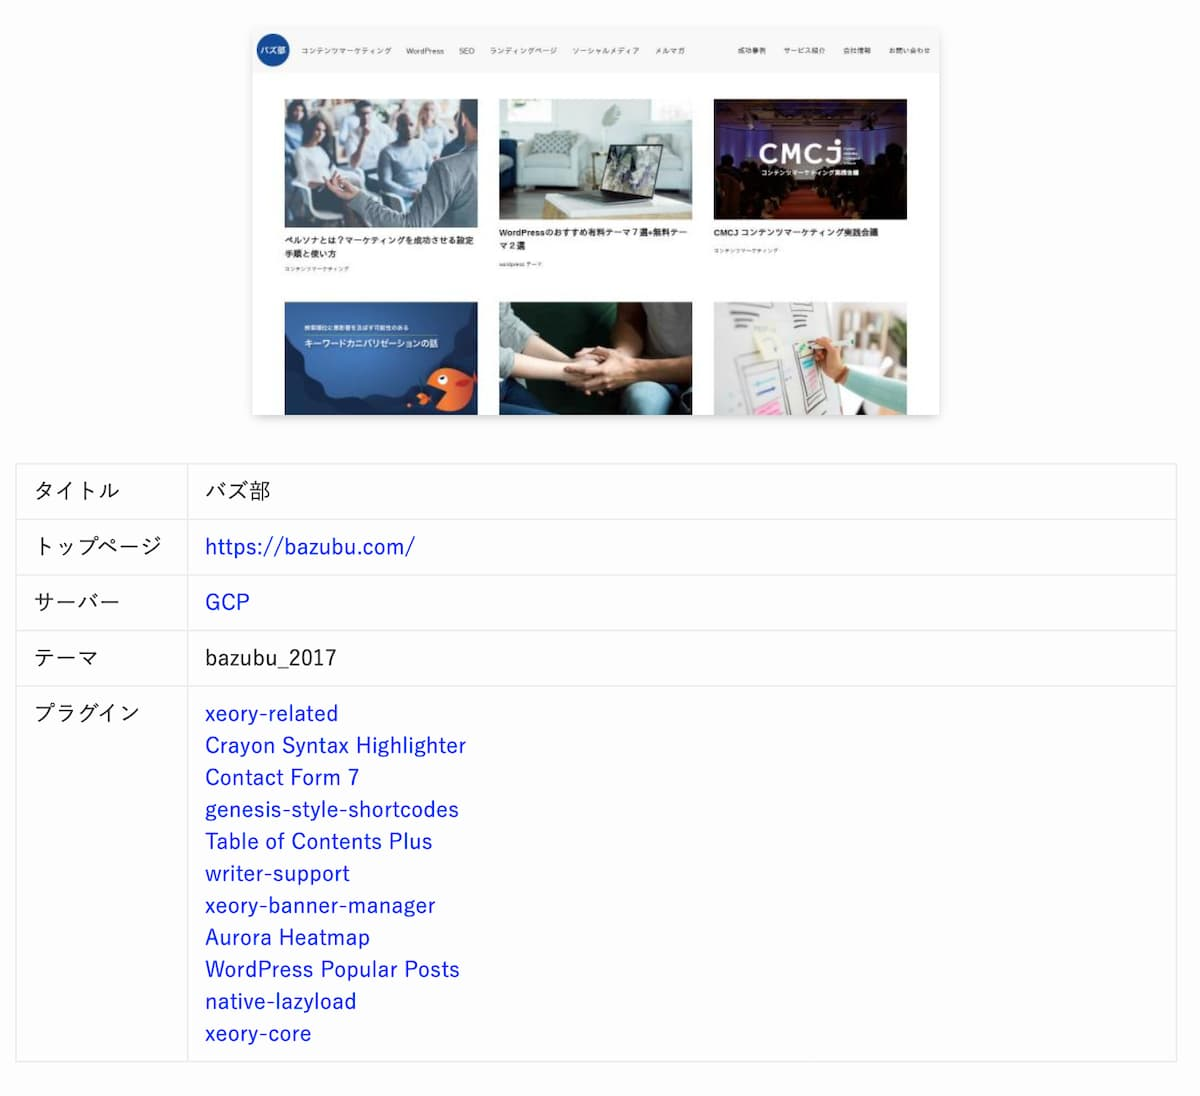 WP-Searchを利用したバス部の調査結果